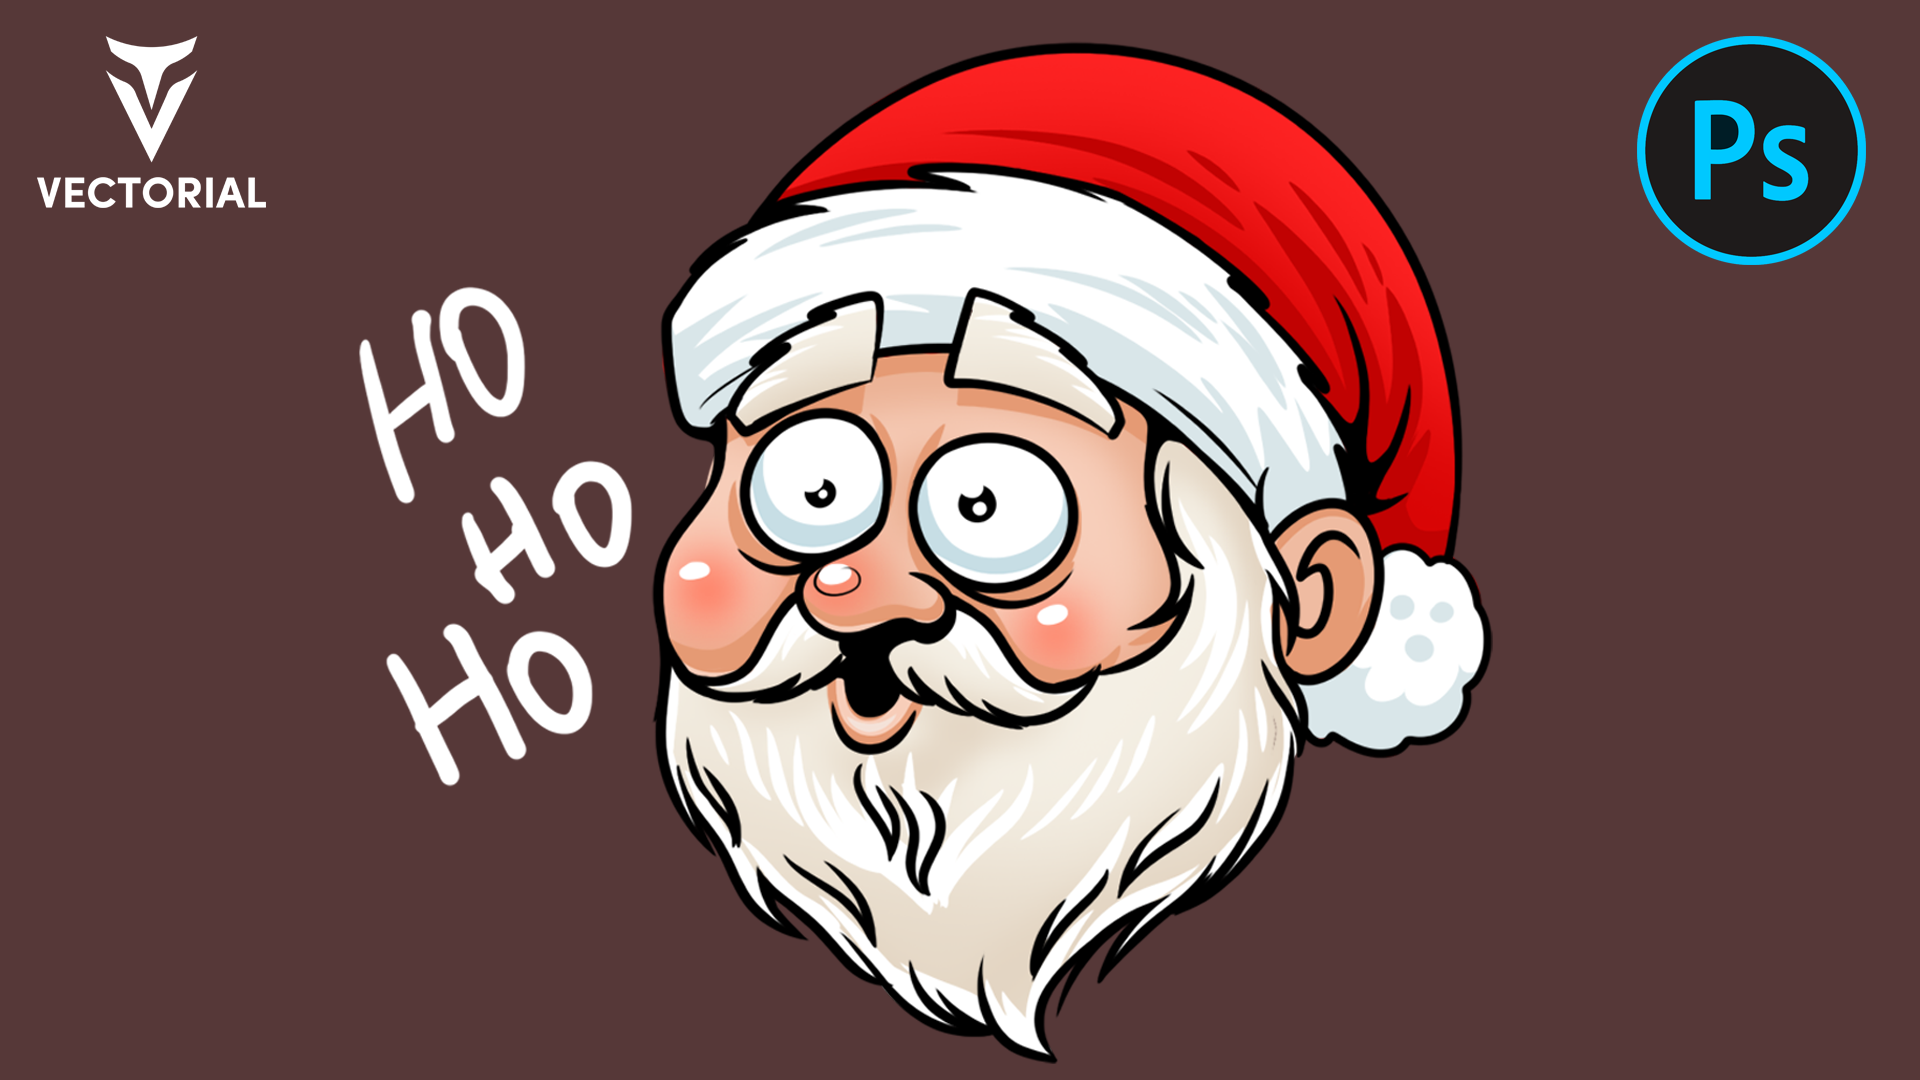 How to draw a Santa Claus in Adobe Photoshop